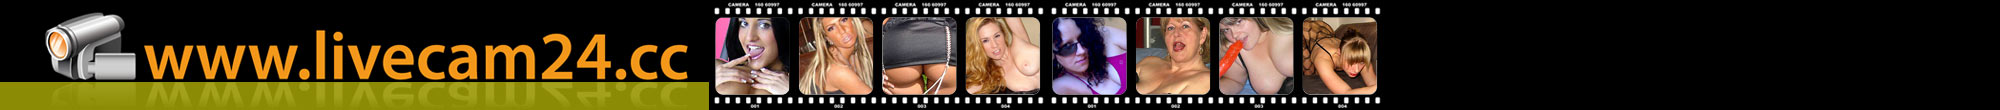 ChantalAnderson, 24 Jahre, BH: 75 D - brüste 75d -  - Video Web Cams Live Sex Chat von heissen Girls